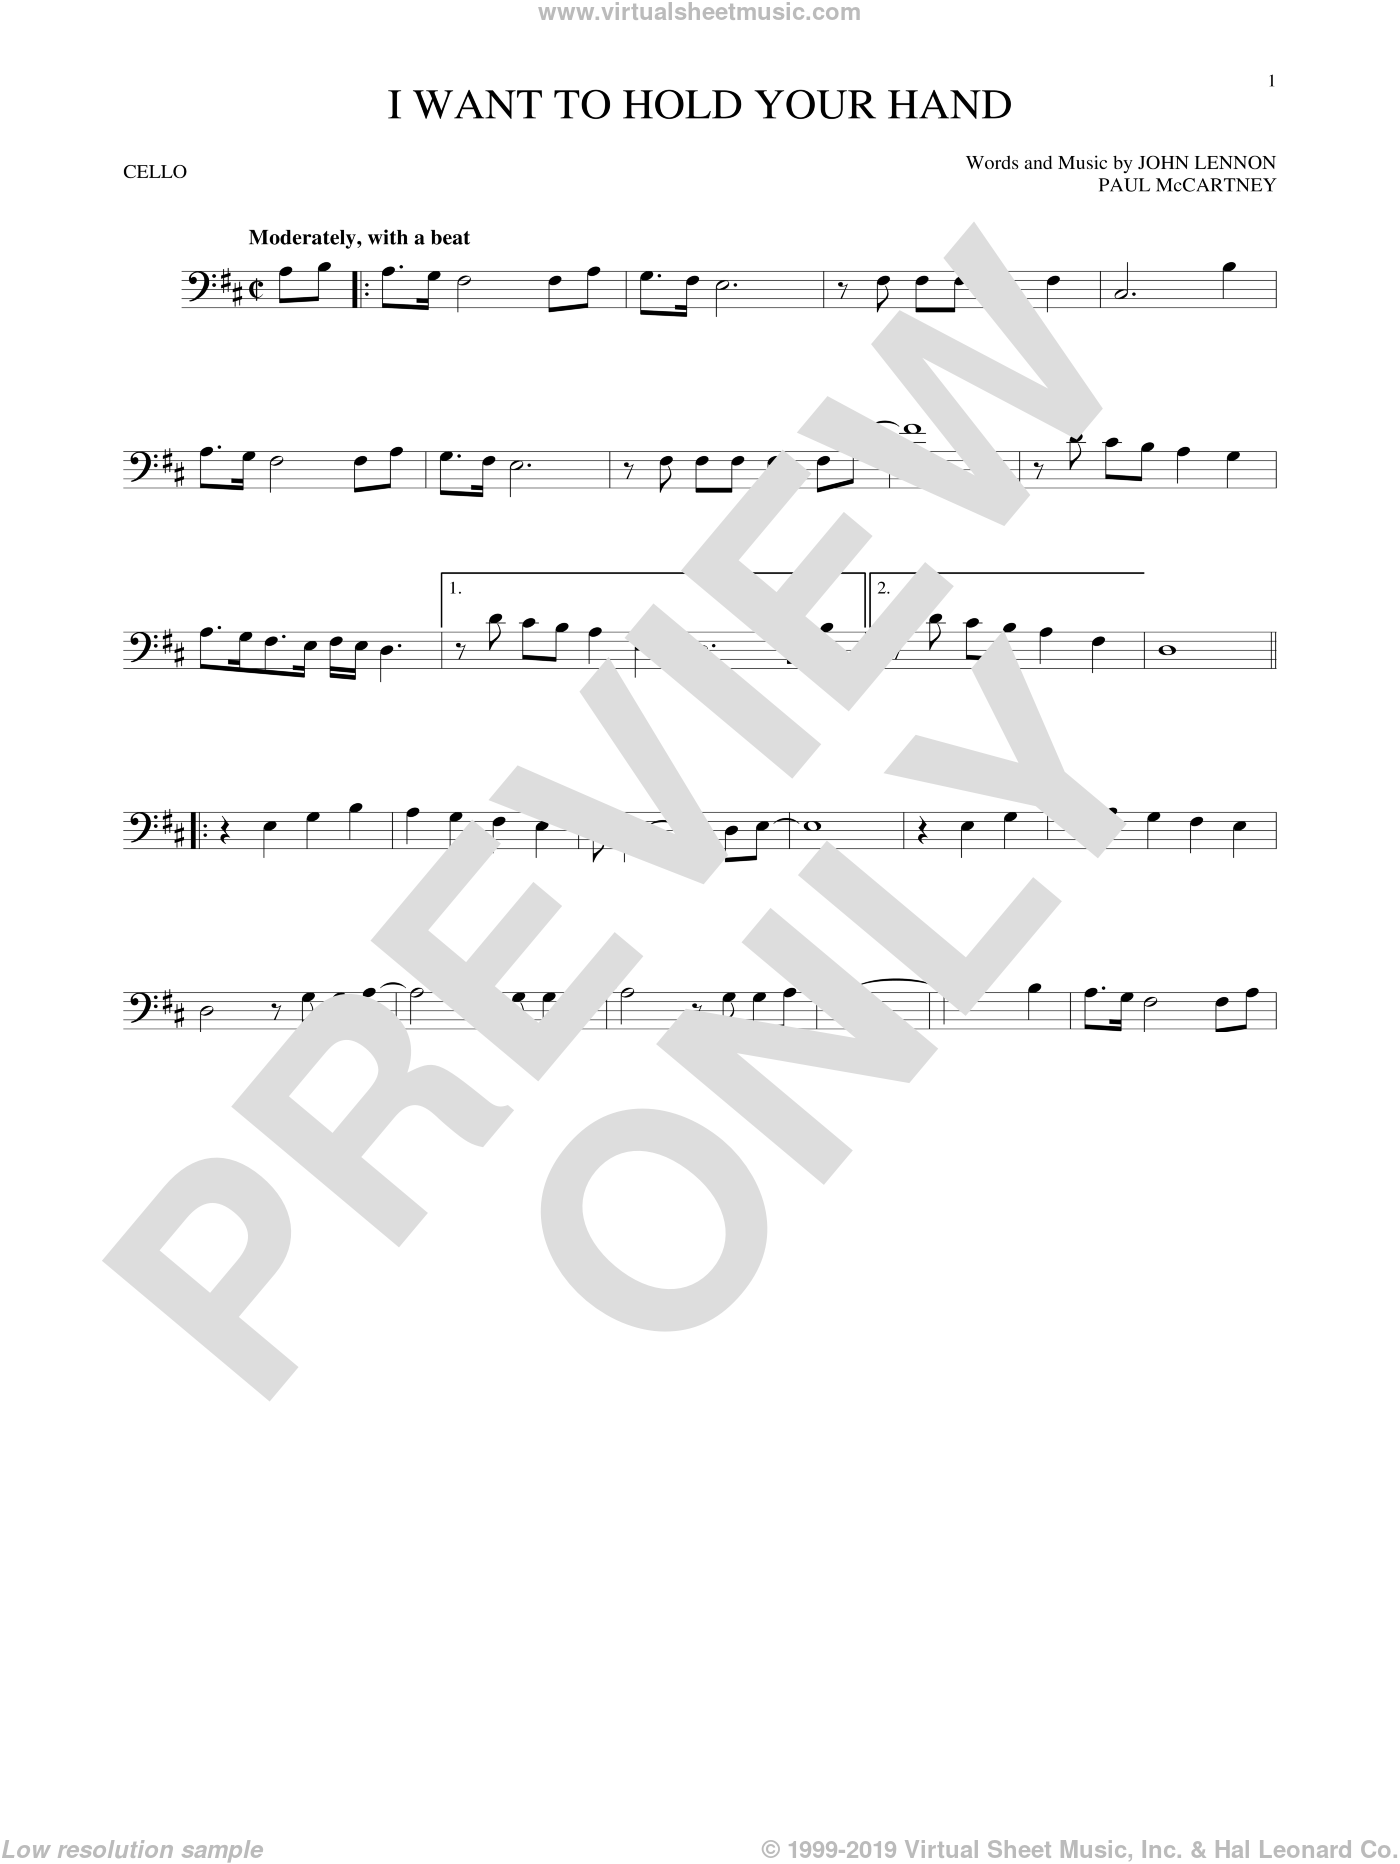 I Want To Hold Your Hand sheet music for cello solo by The Beatles, John Lennon and Paul McCartney, intermediate skill level